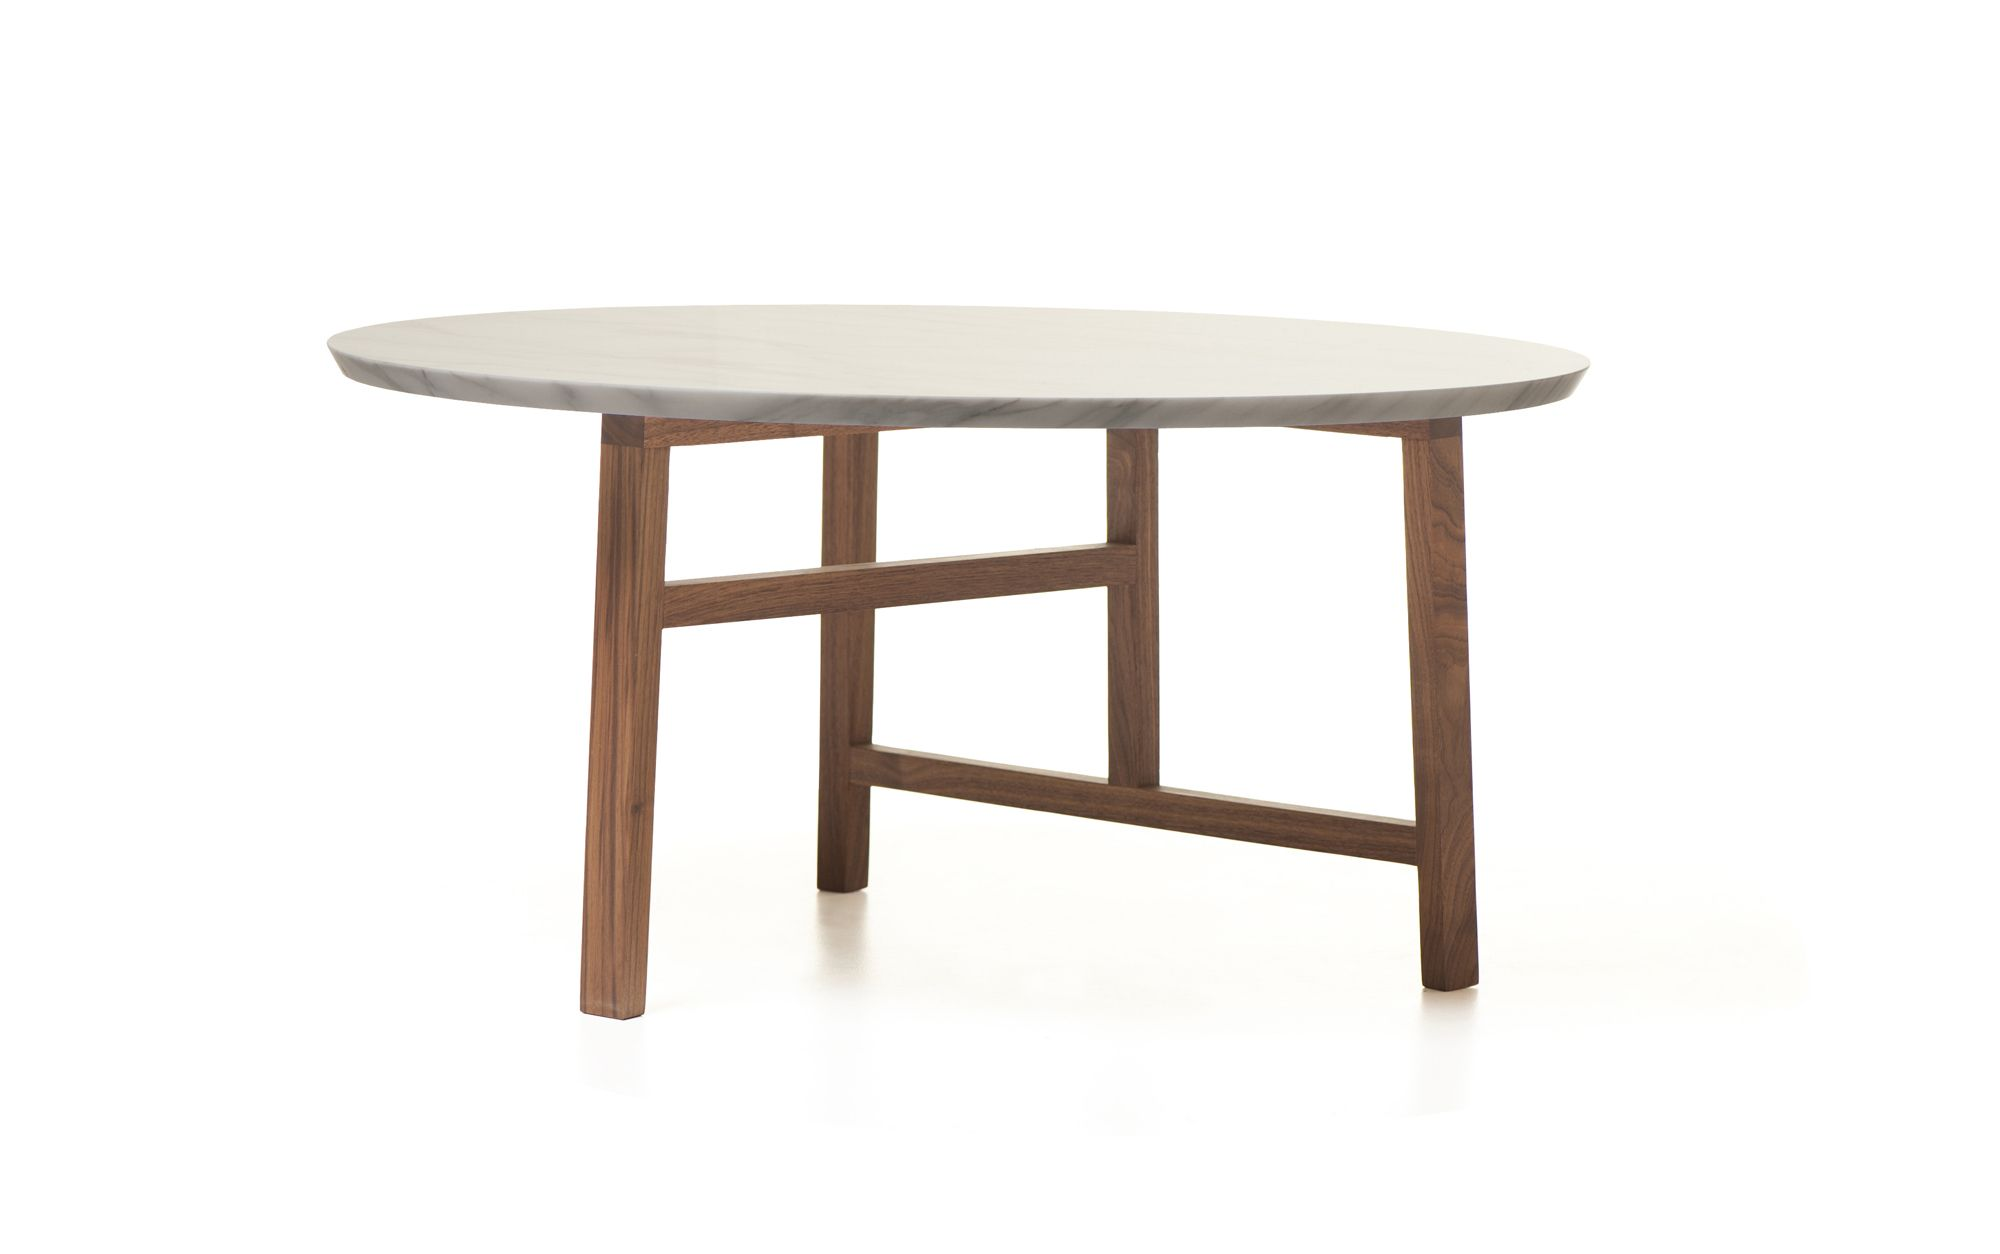 Three Leg Table Coffee Table Marble Top Coffee Table Coffee Table White [ 1254 x 2000 Pixel ]